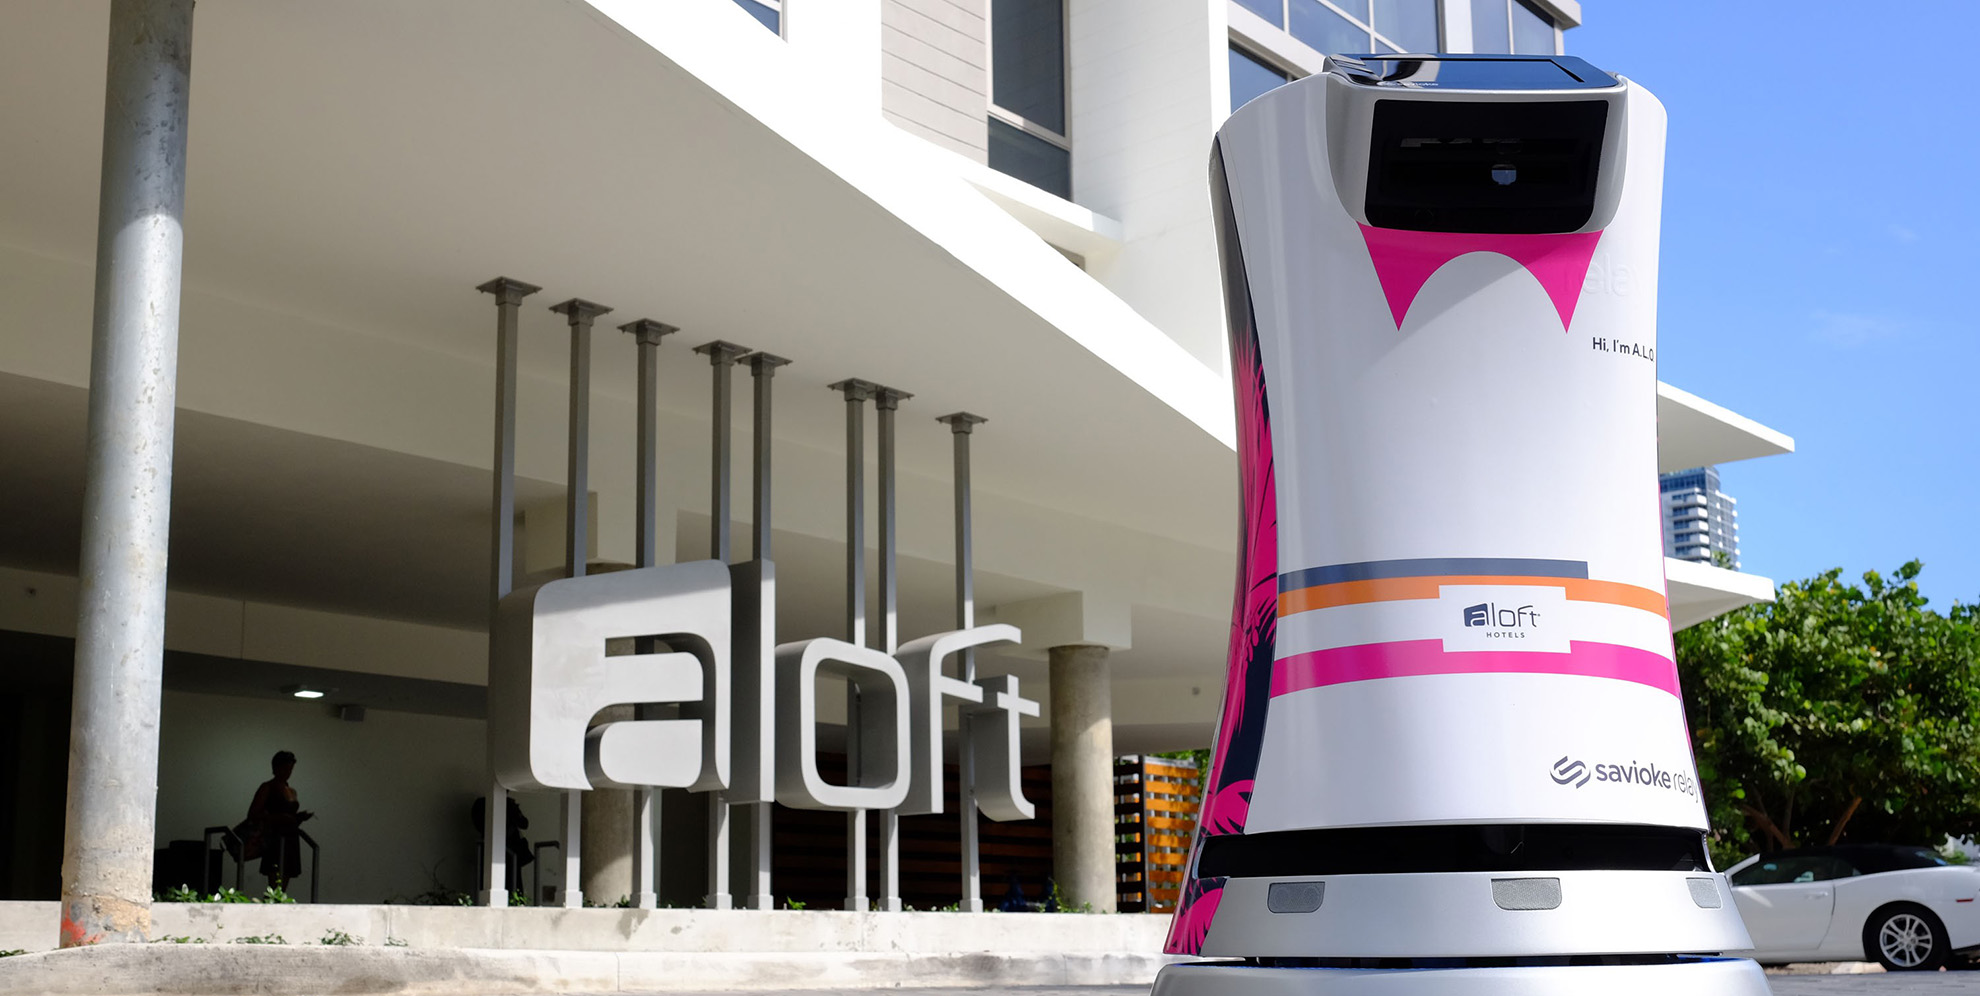 PR Roundup: Aloft + Element Hotel Making Big News